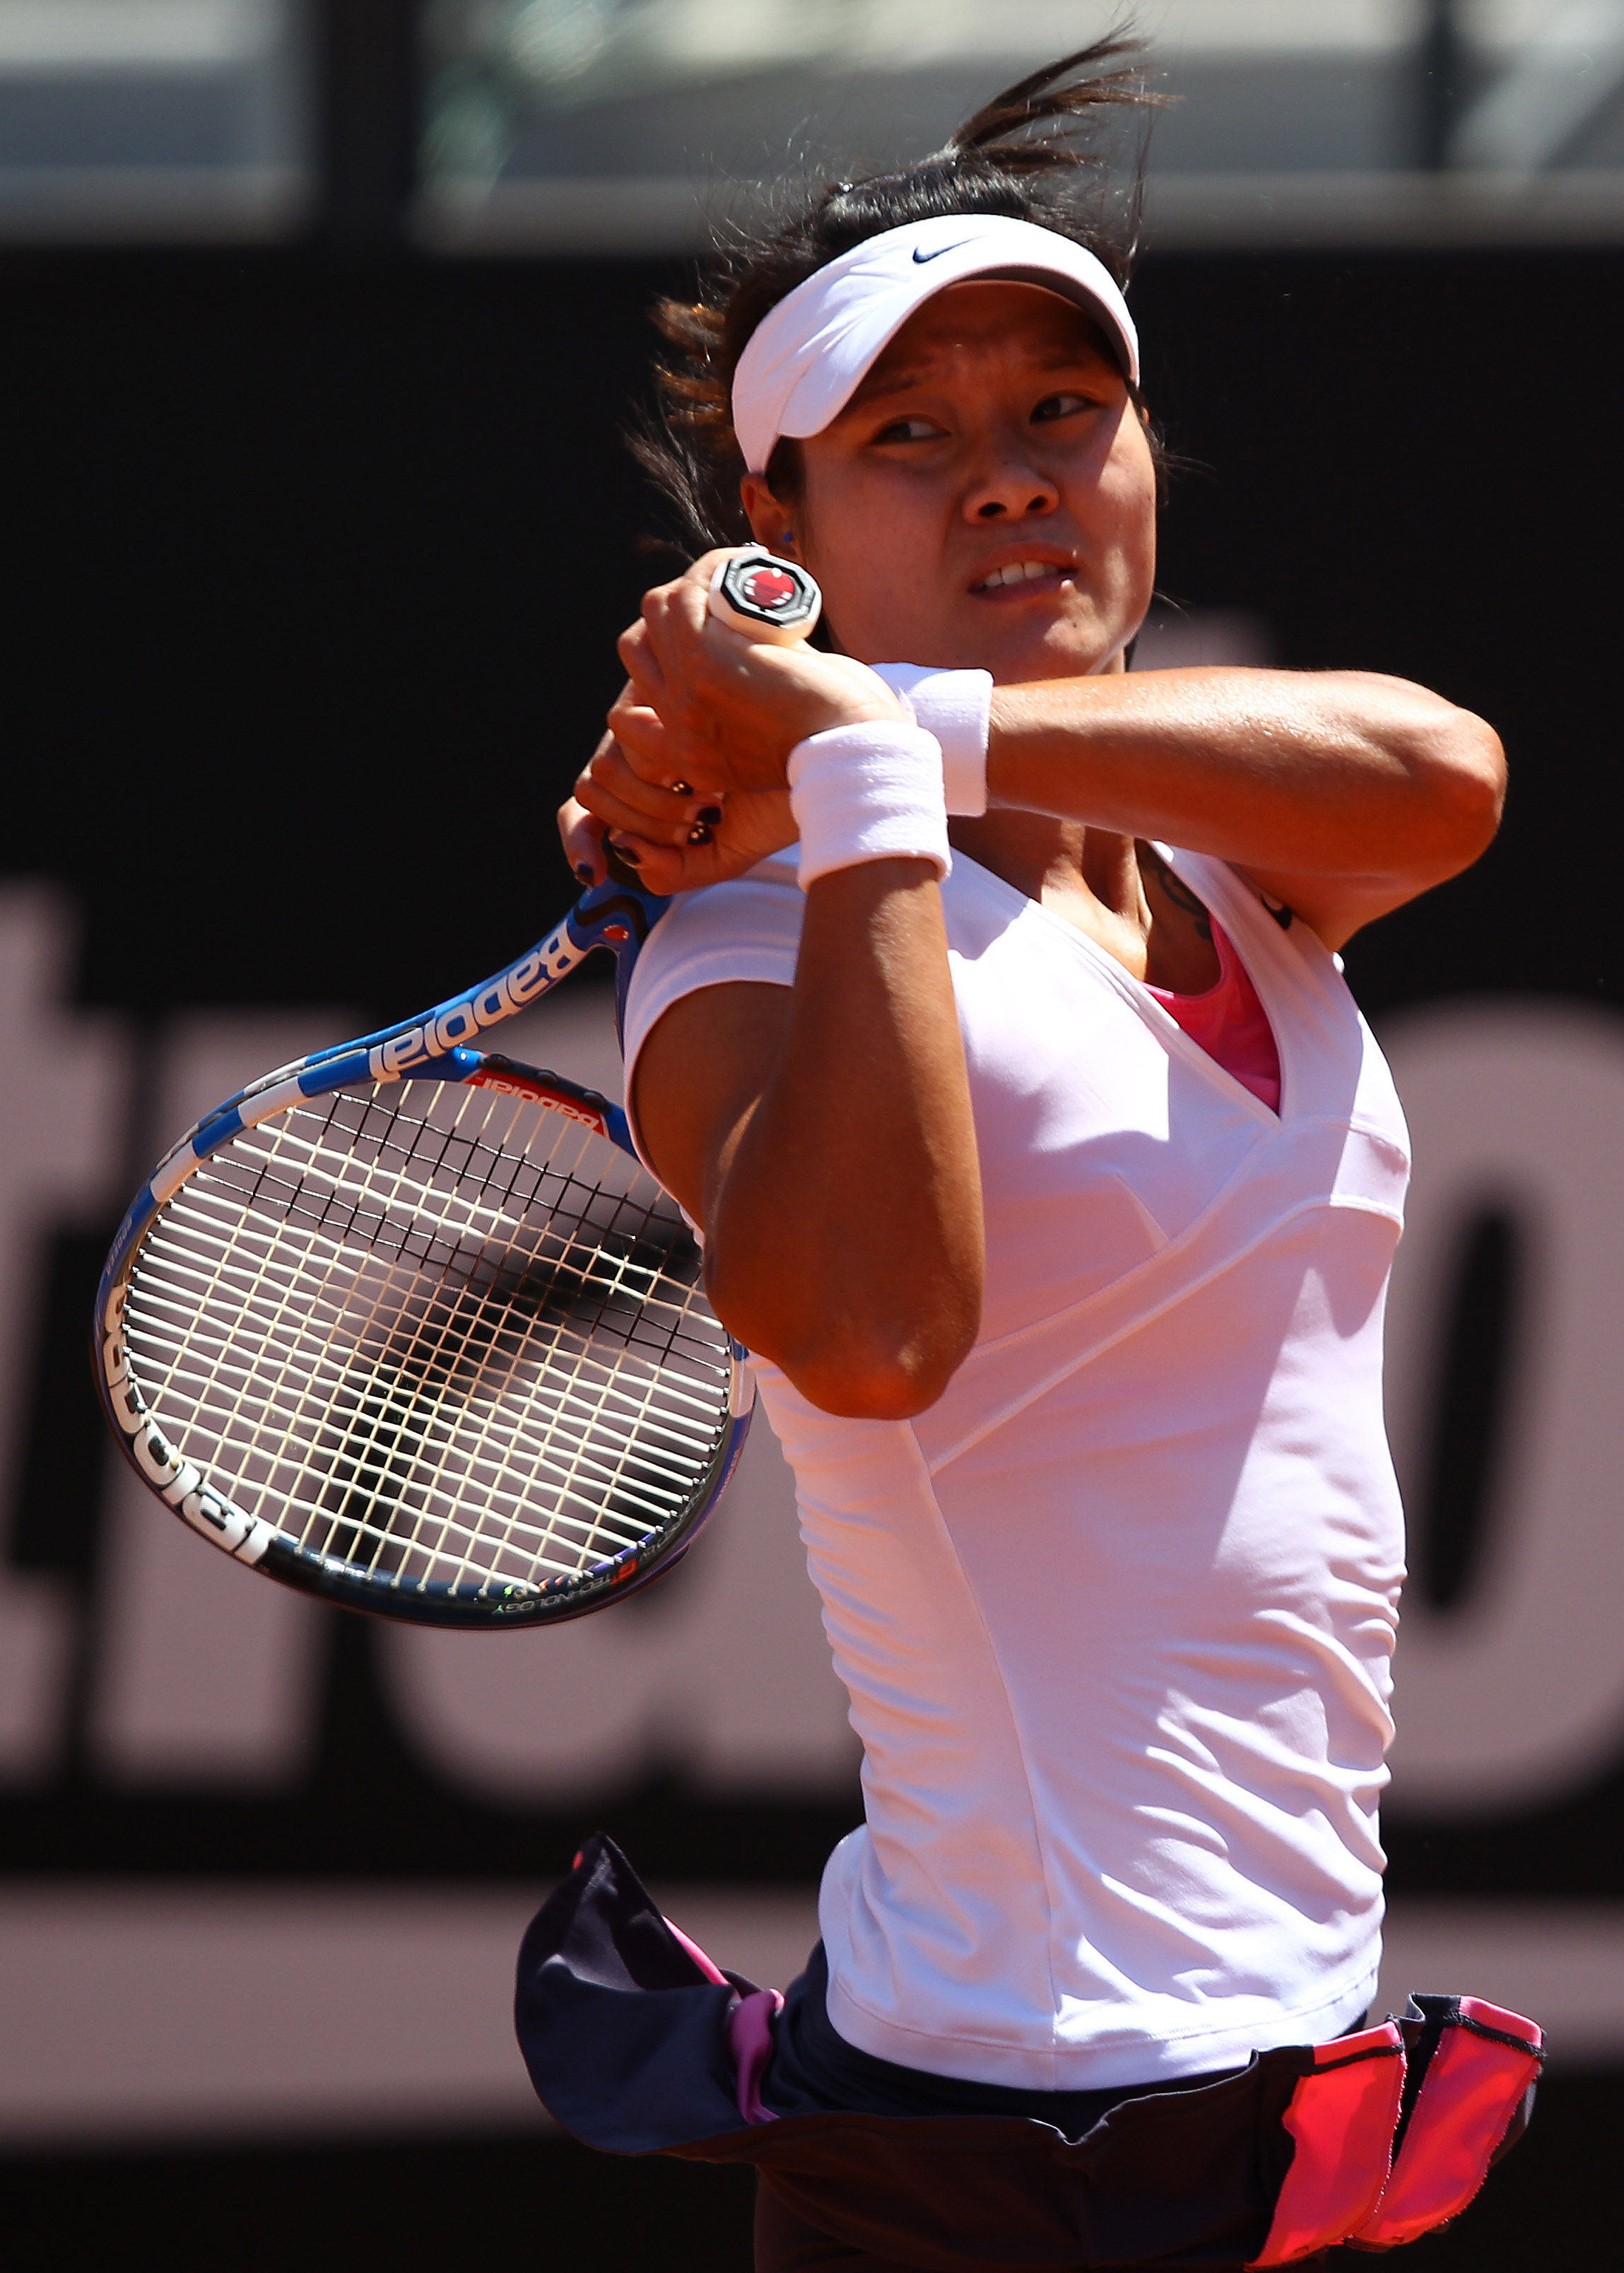 ROME, ITALY - MAY 14:  Li Na of China in action during her semi final match against Sam Stosur of Australia during day seven of the Internazoinali BNL D'Italia at the Foro Italico Tennis Centre  on May 14, 2011 in Rome, Italy.  (Photo by Clive Brunskill/G